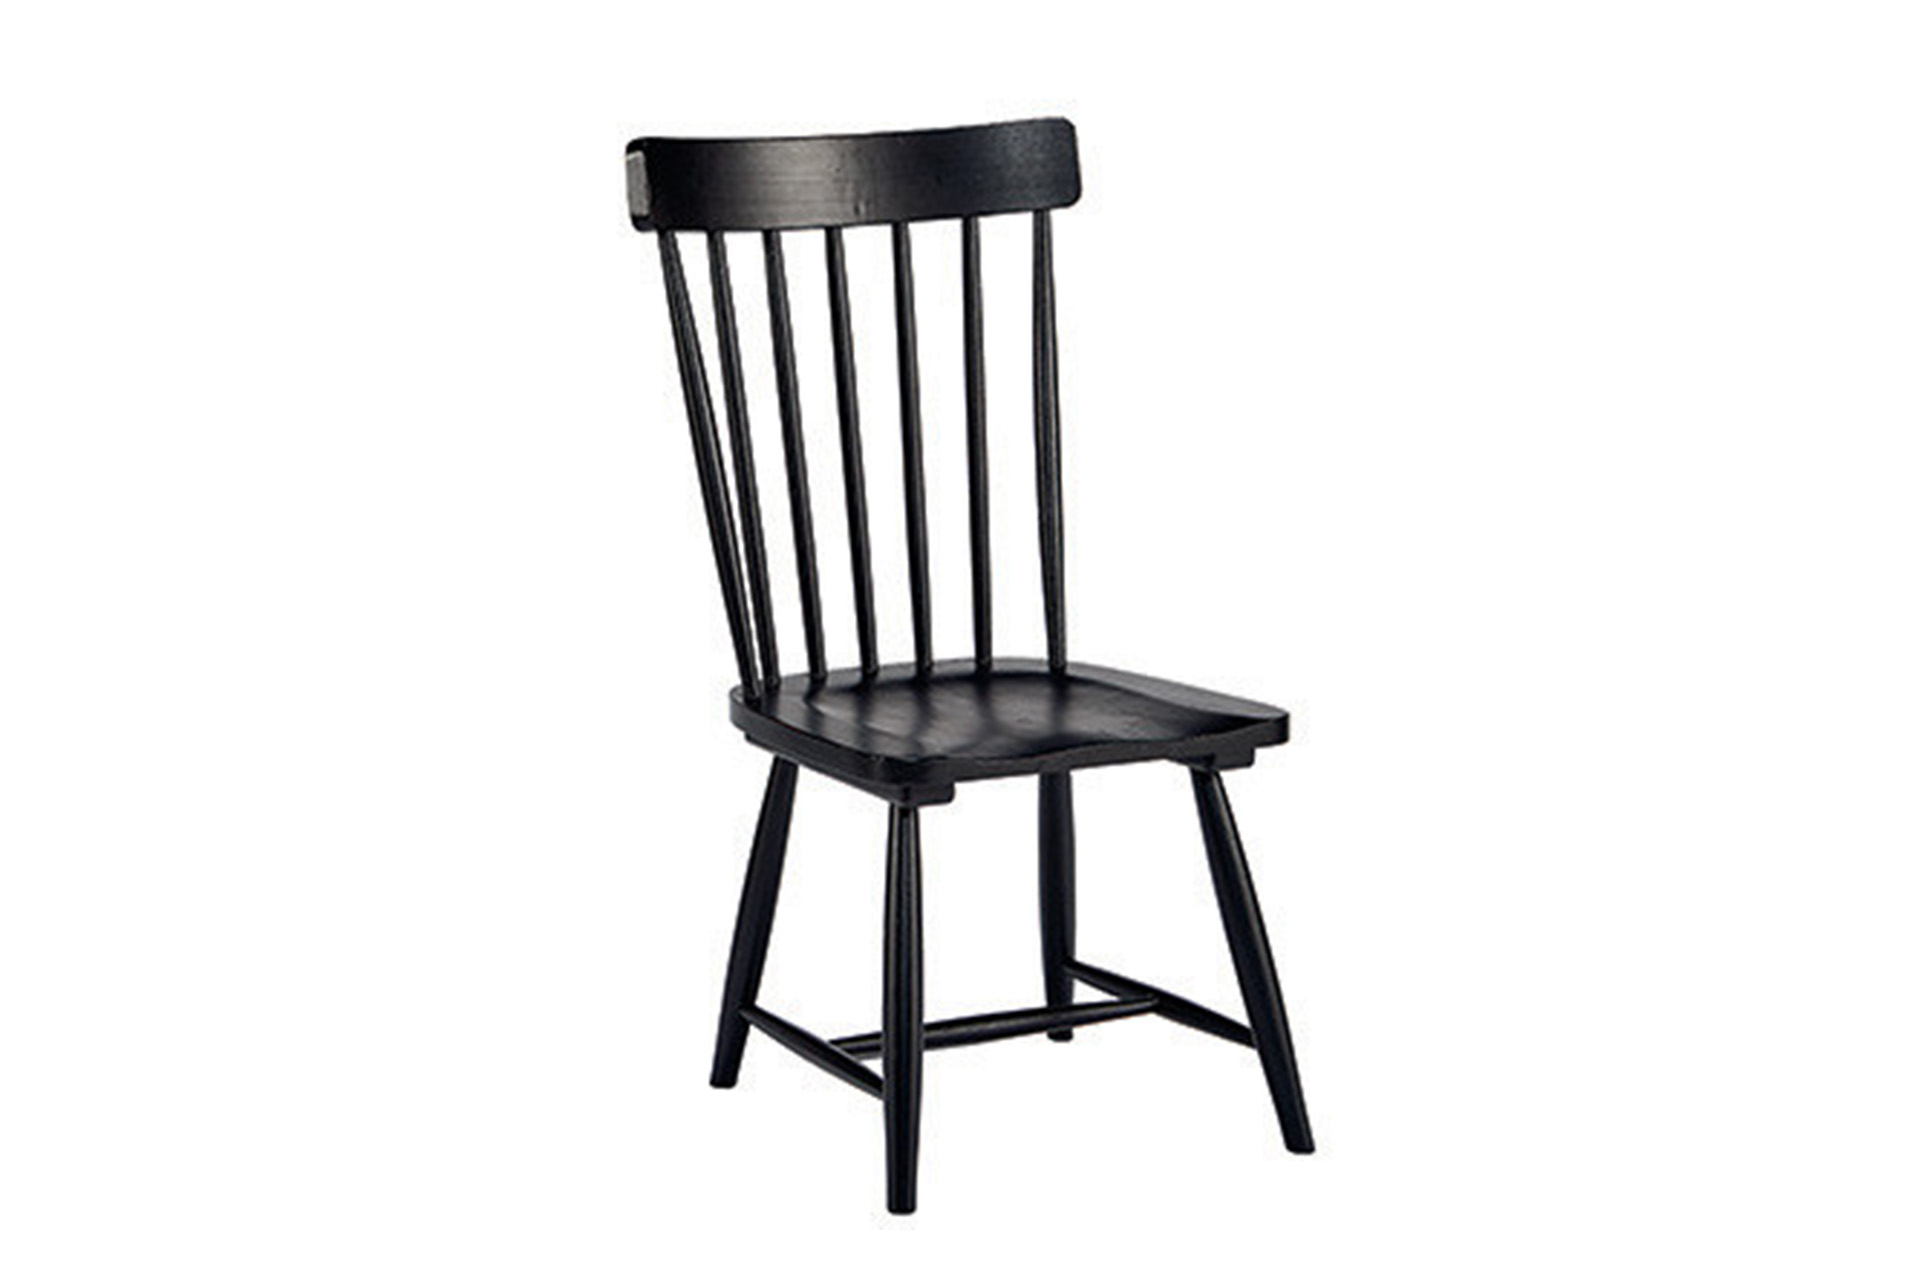 Merveilleux Magnolia Home Spindle Back Side Chair By Joanna Gaines (Qty: 1) Has Been  Successfully Added To Your Cart.